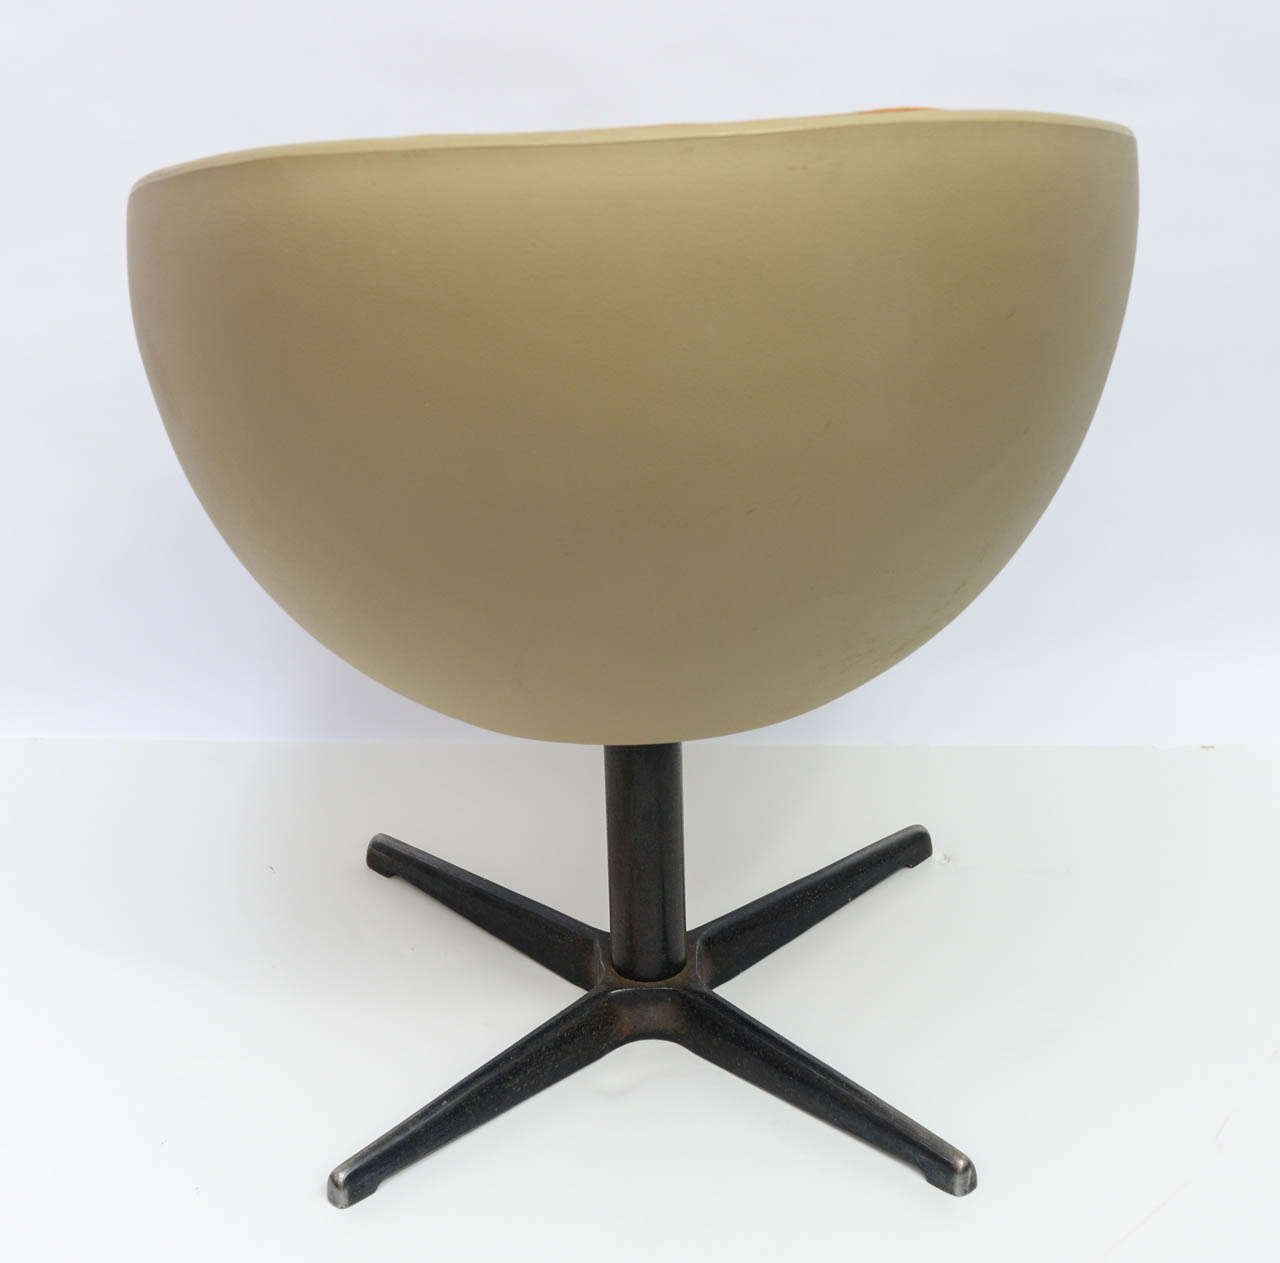 swivel chair egg queen and king chairs 1960s ball at 1stdibs